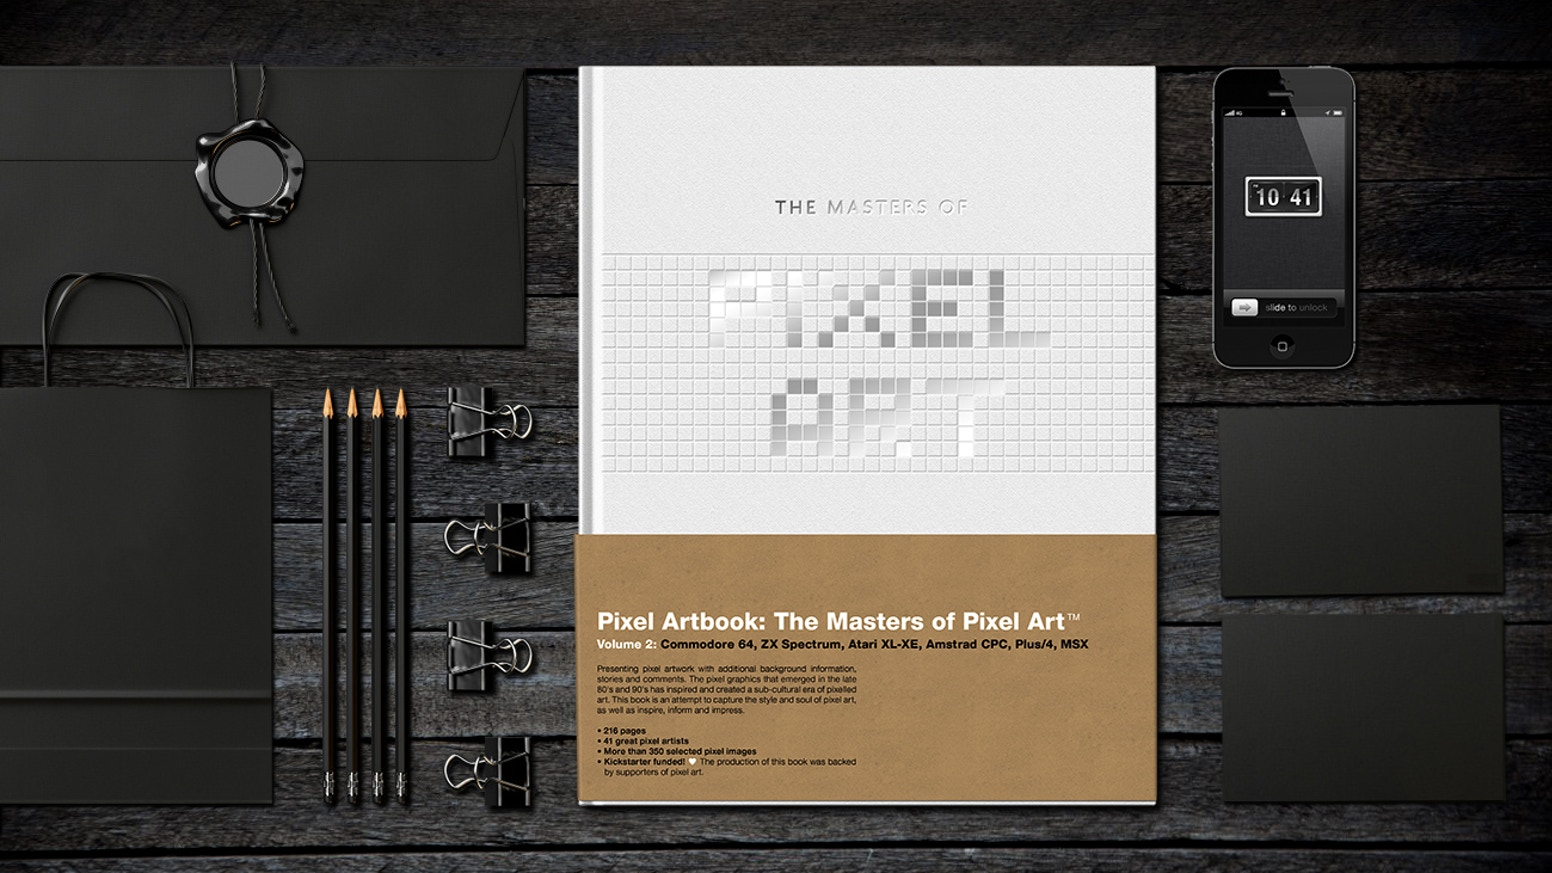 A high quality art book with pixel art from artists on some of the world's most popular 8-bit computers.